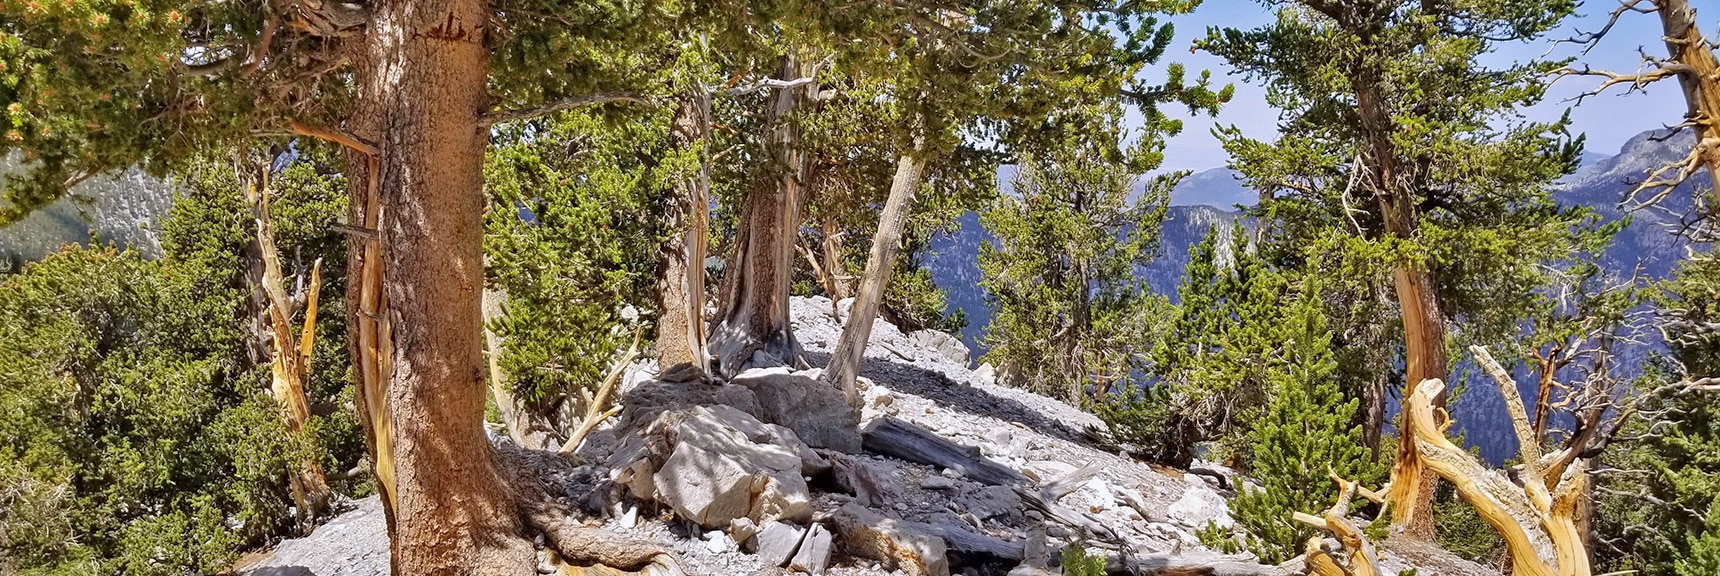 Bristlecone Pine Forest at the Summit of the